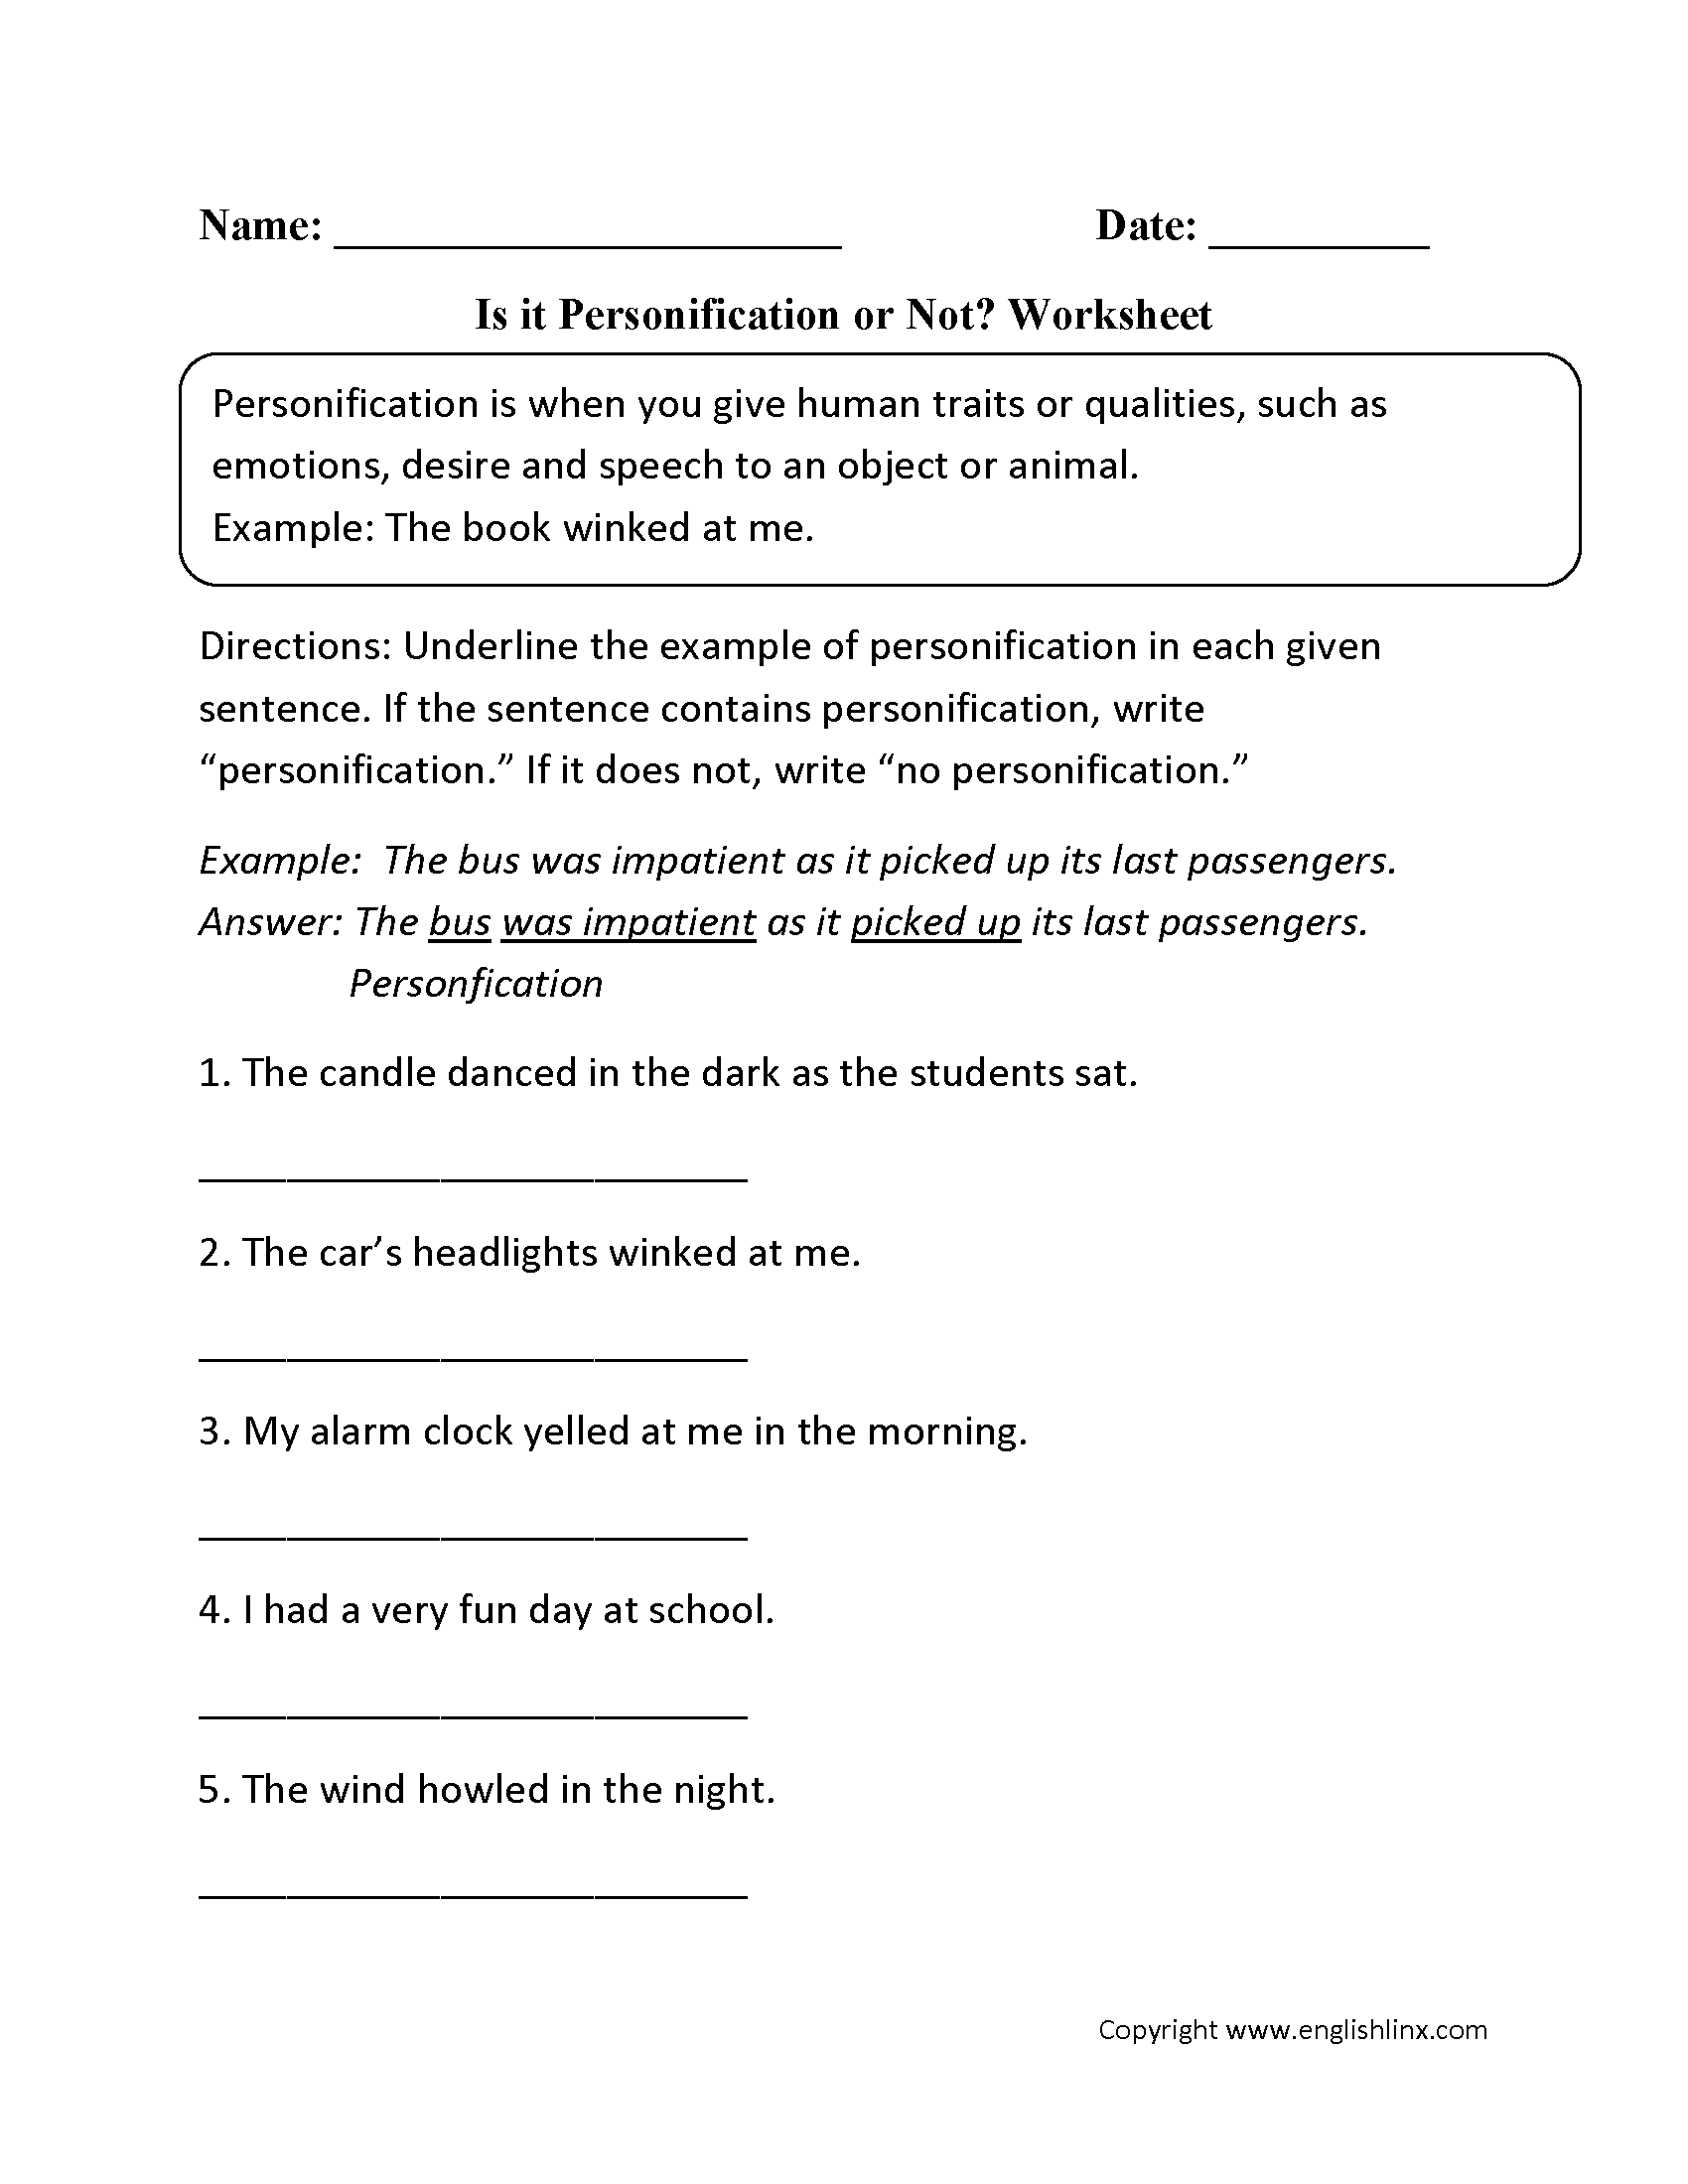 Is It Personification Or Not Worksheet With Images